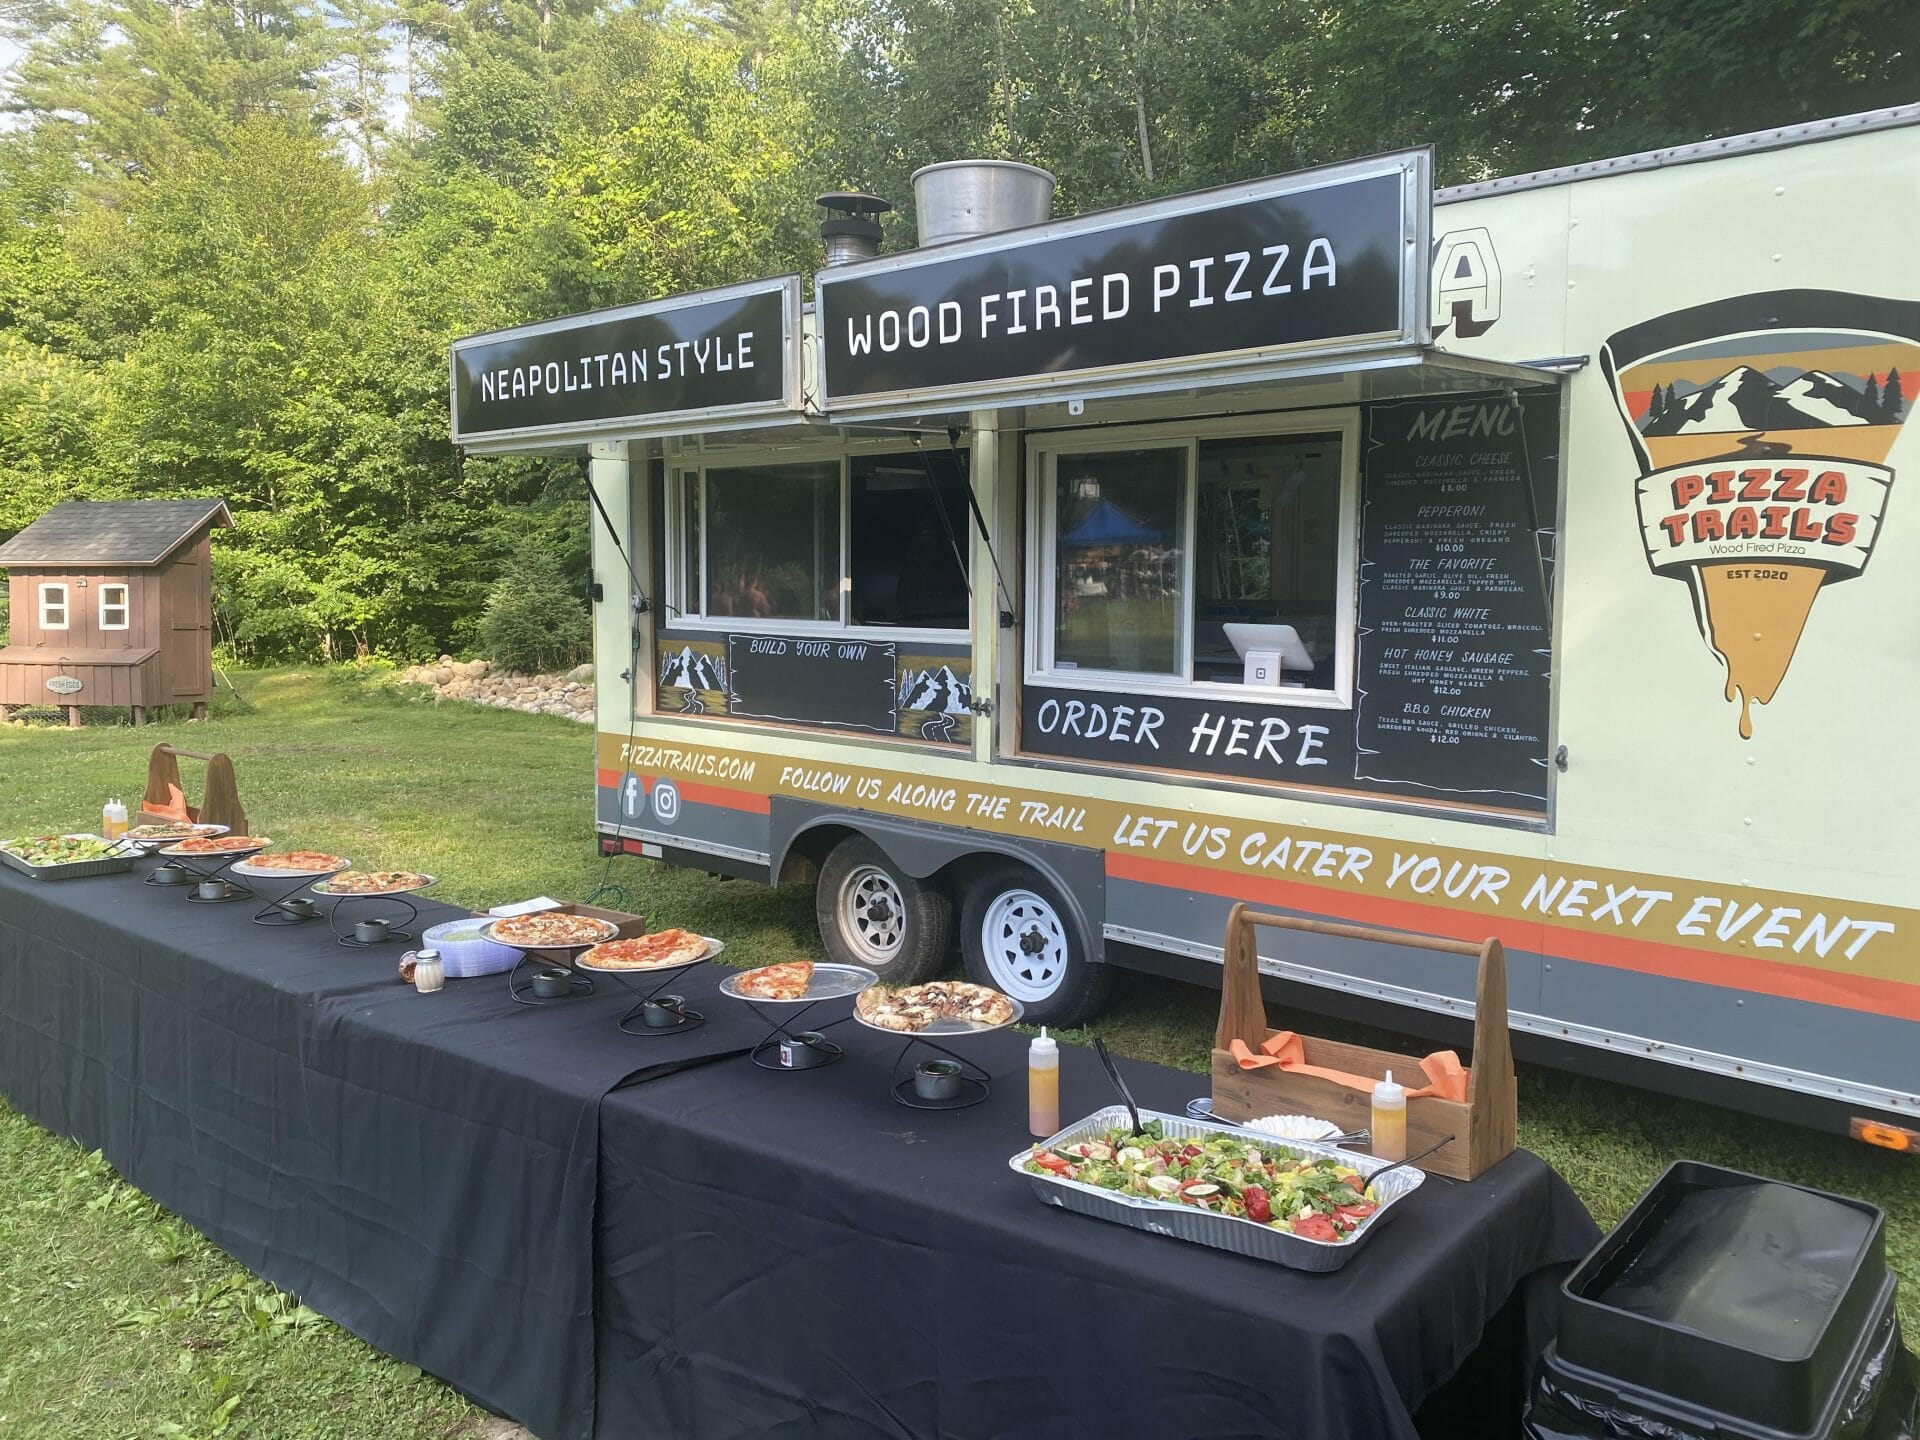 Pizza Trails Catering